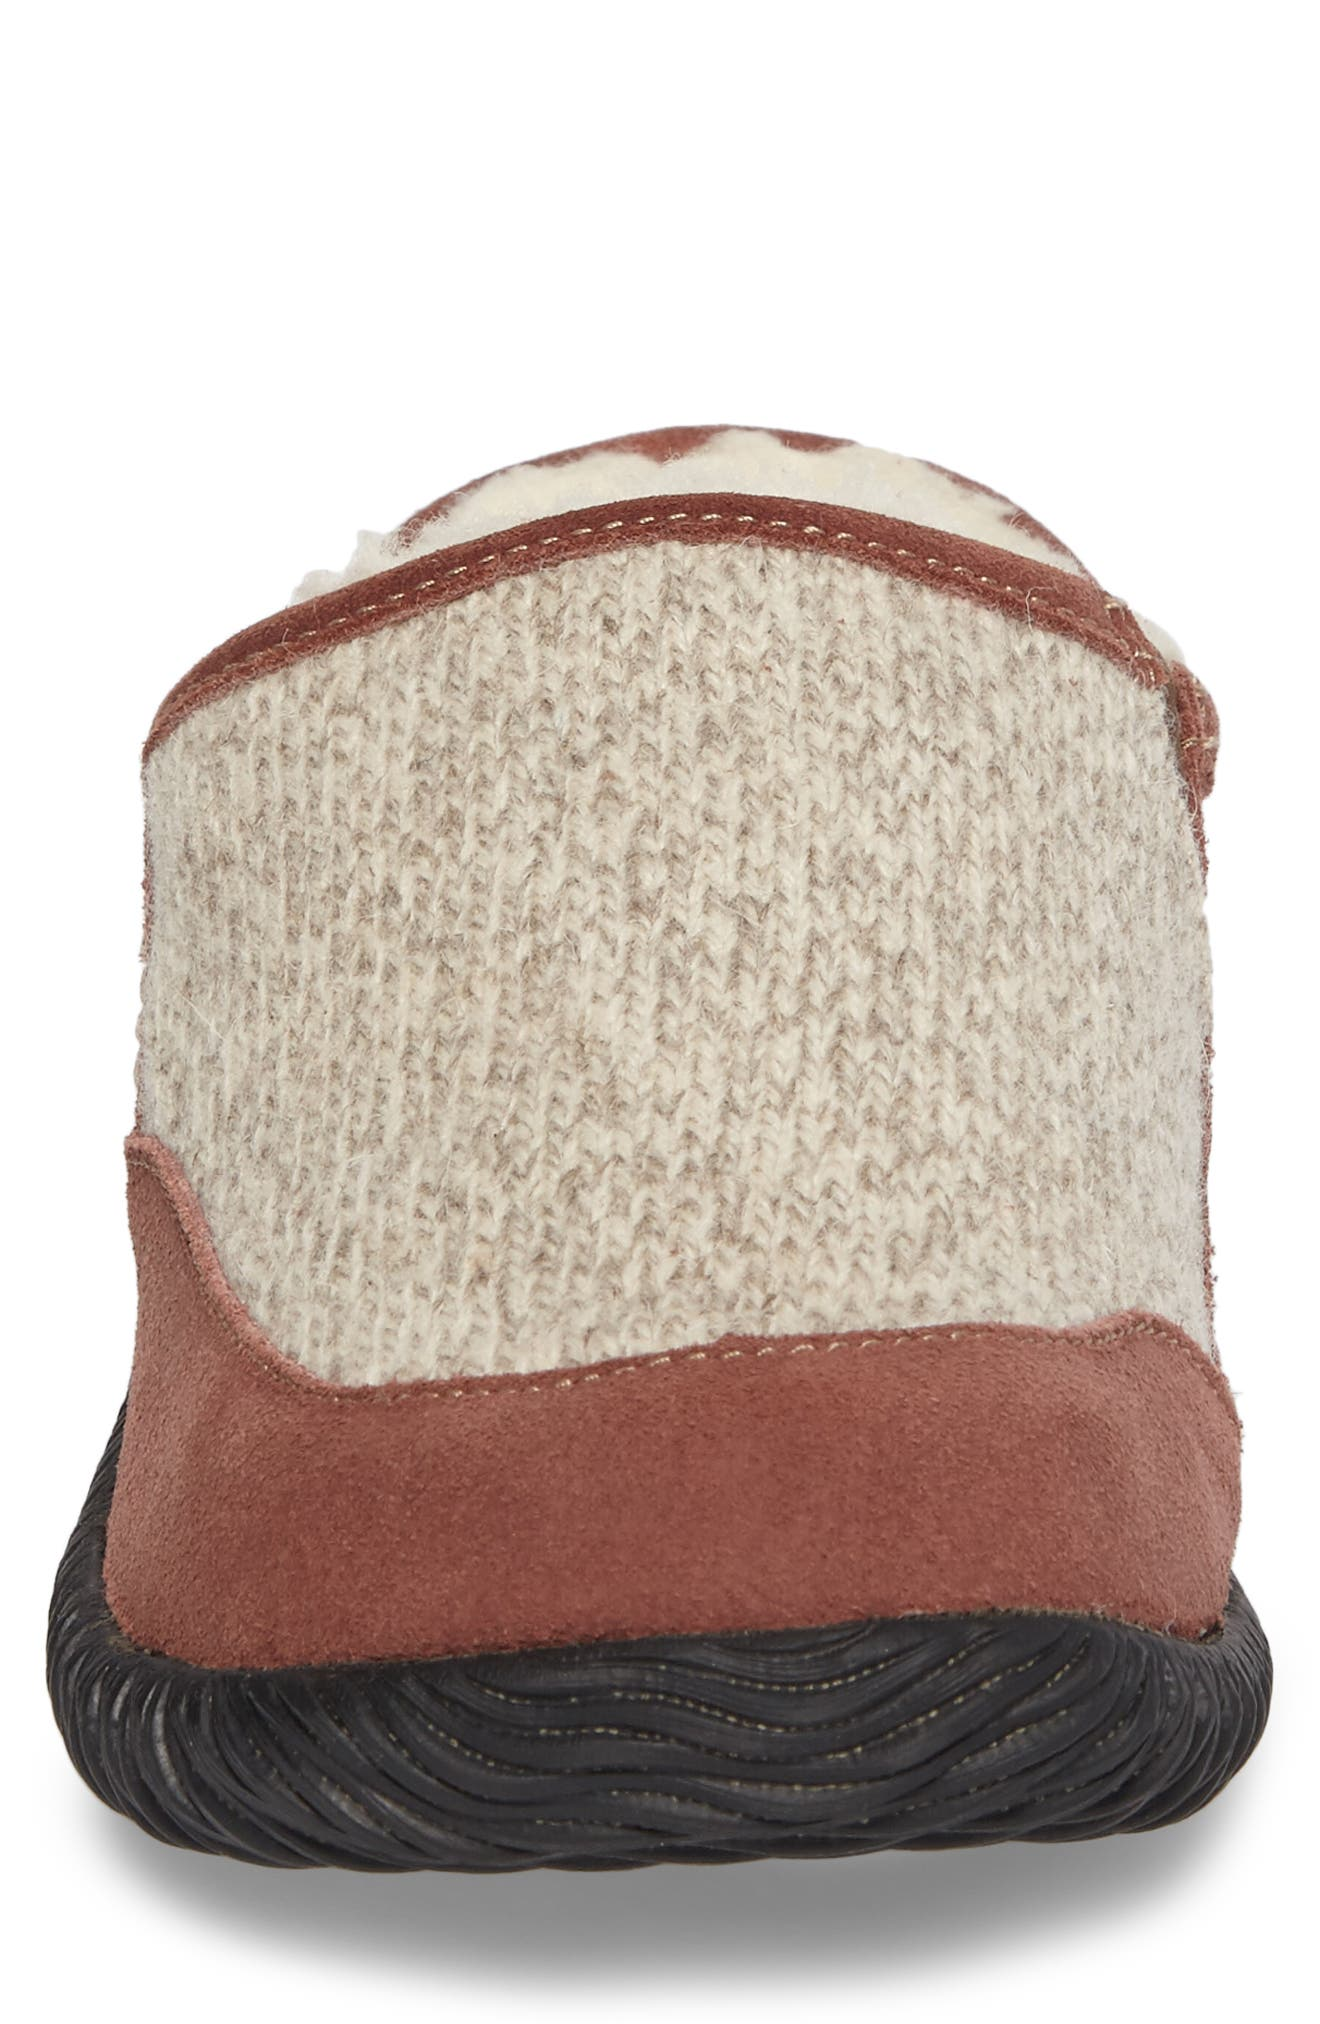 Alternate Image 4  - Acorn 'Rambler' Mule Slipper (Men)